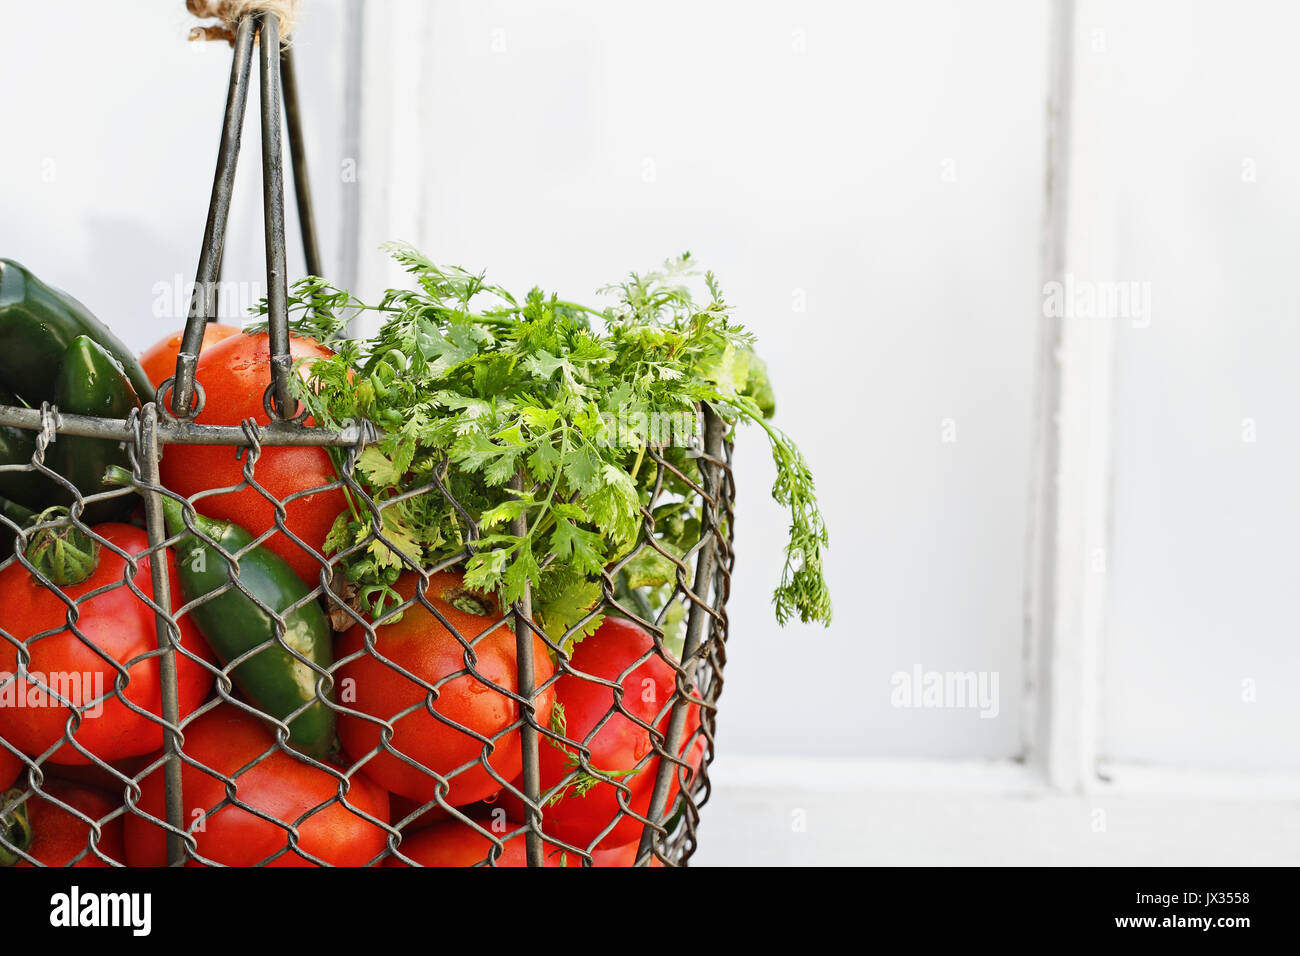 Ingredients for homemade salsa in an old country basket sitting in front of a window. Shallow depth of field. - Stock Image